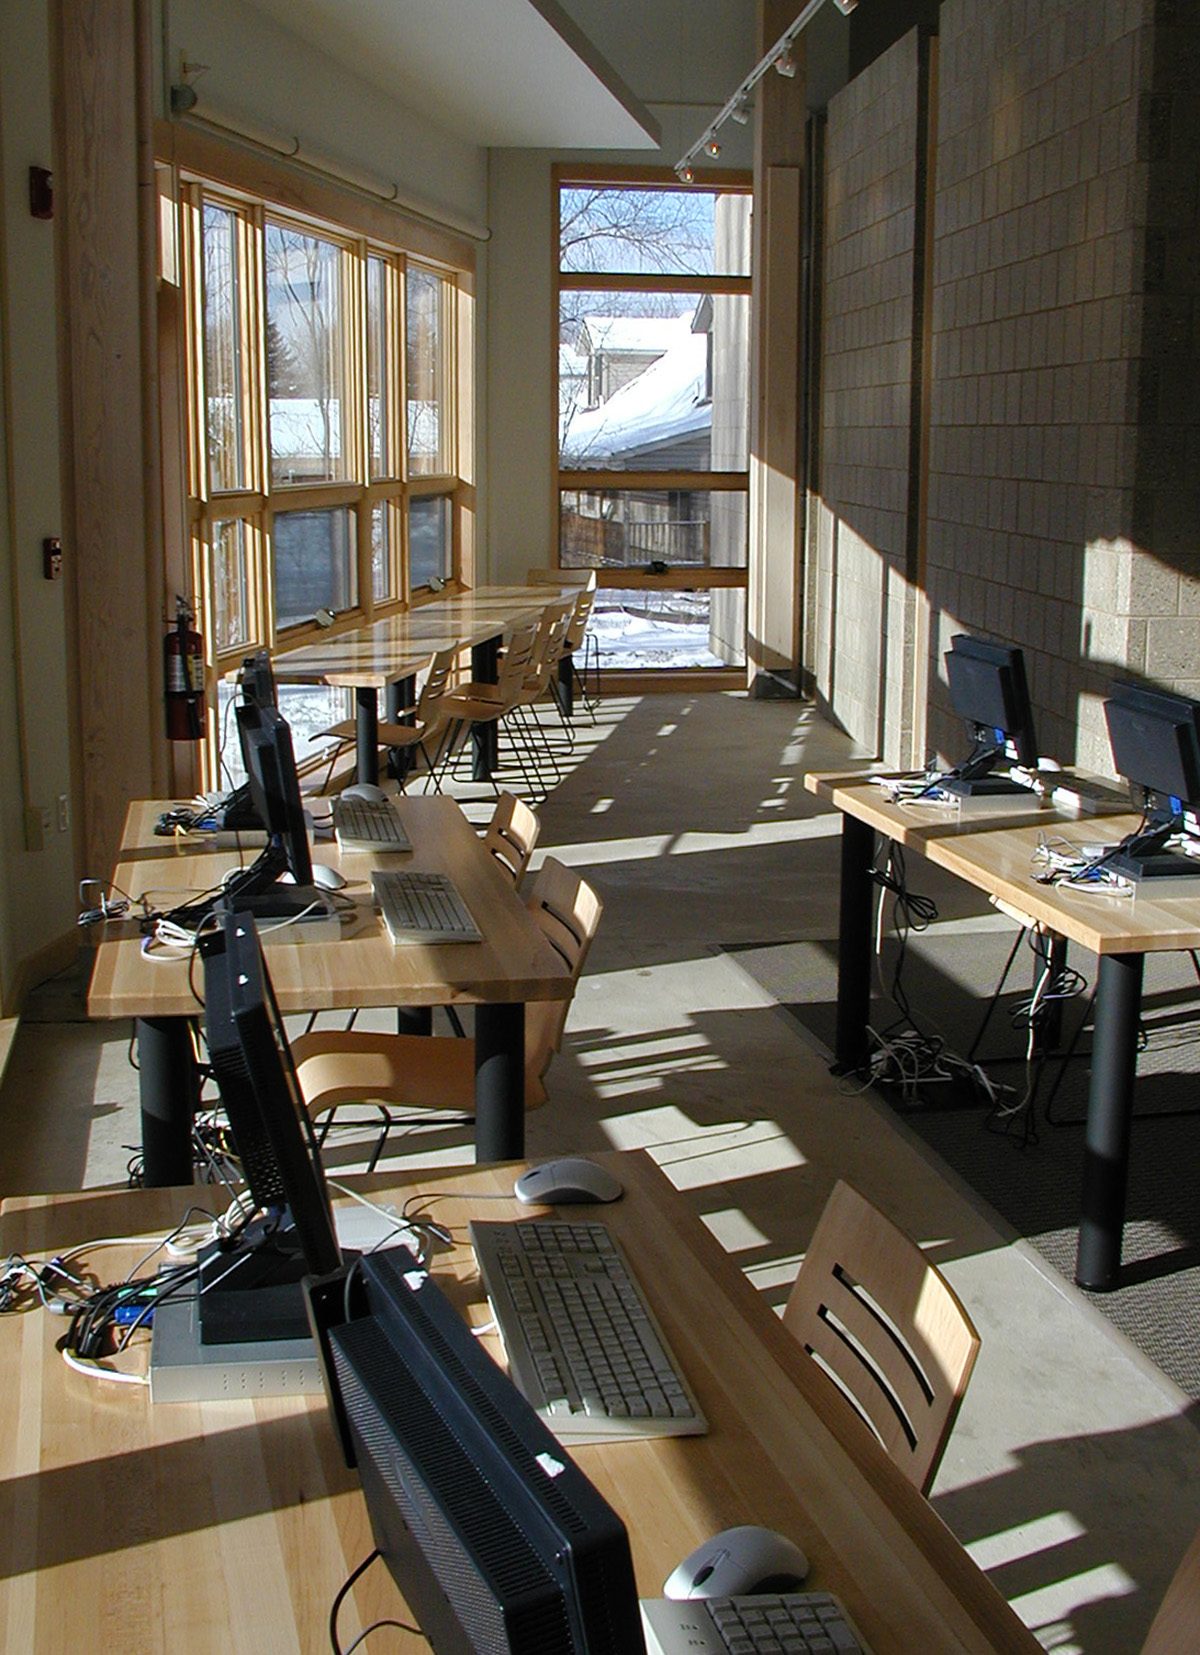 Malletts Creek Branch: South windows, interior, 2003 image